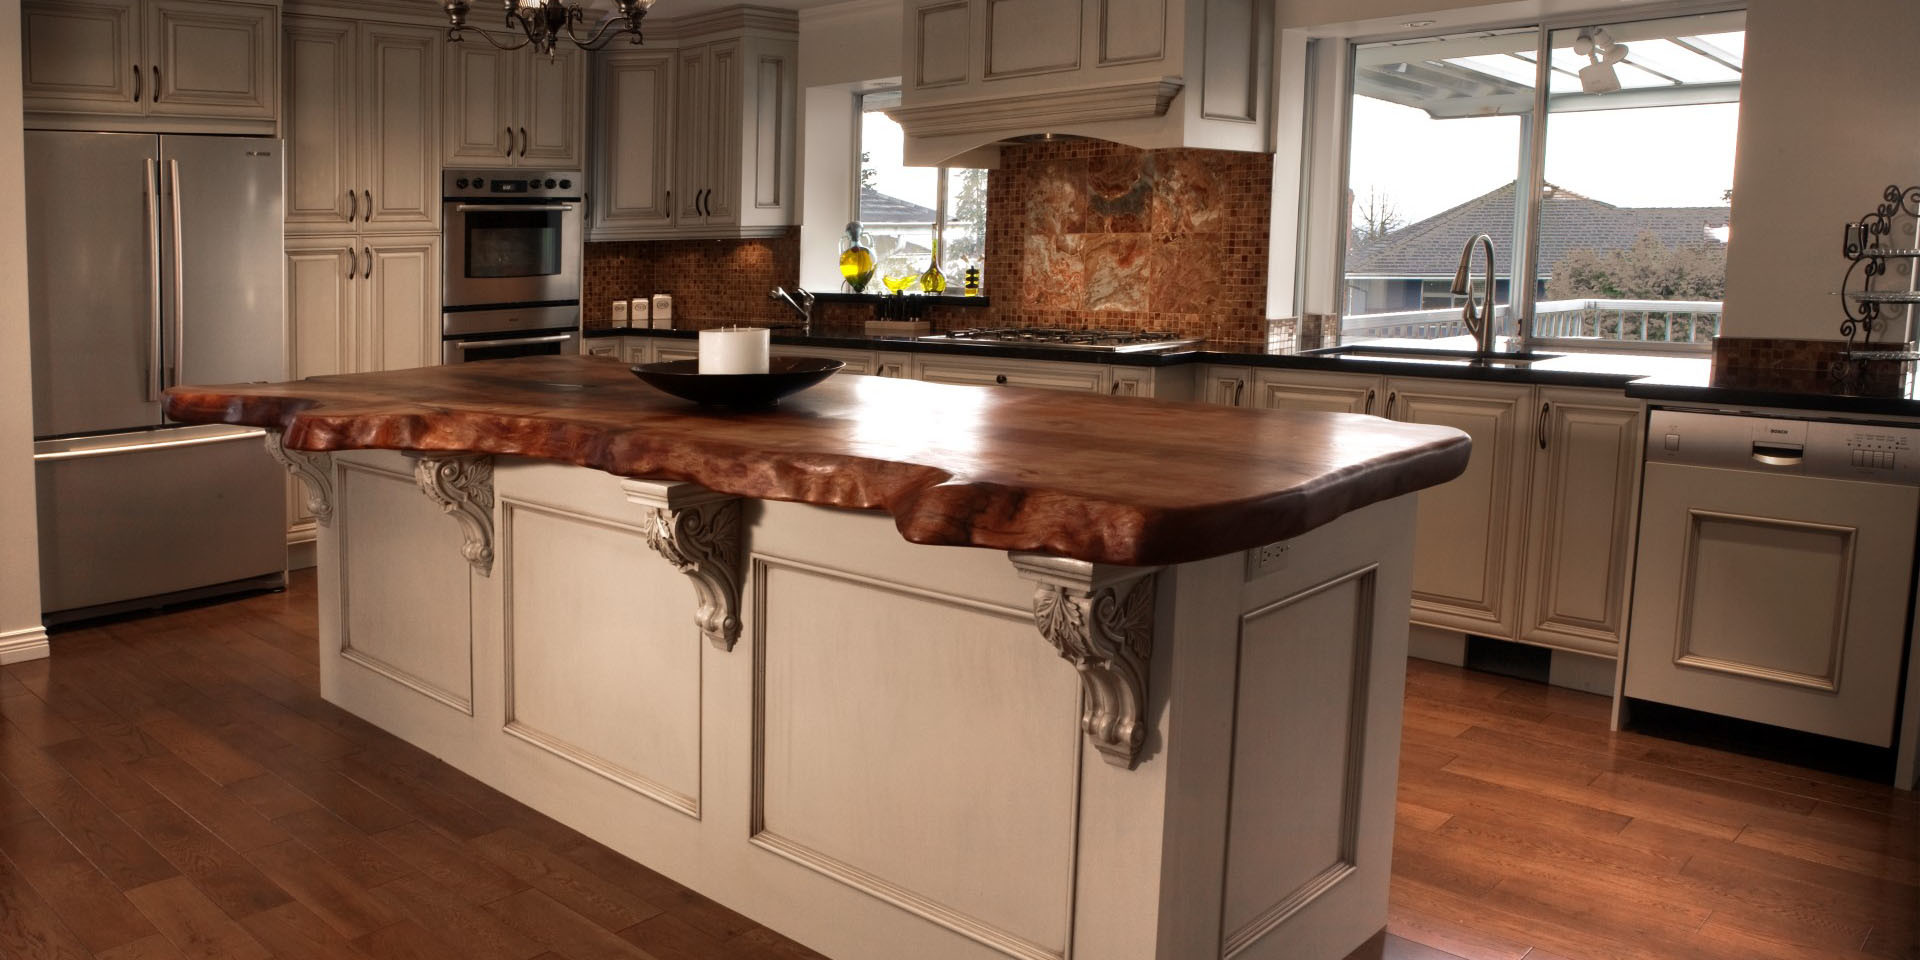 Beau Bojan High End Kitchens Inc |